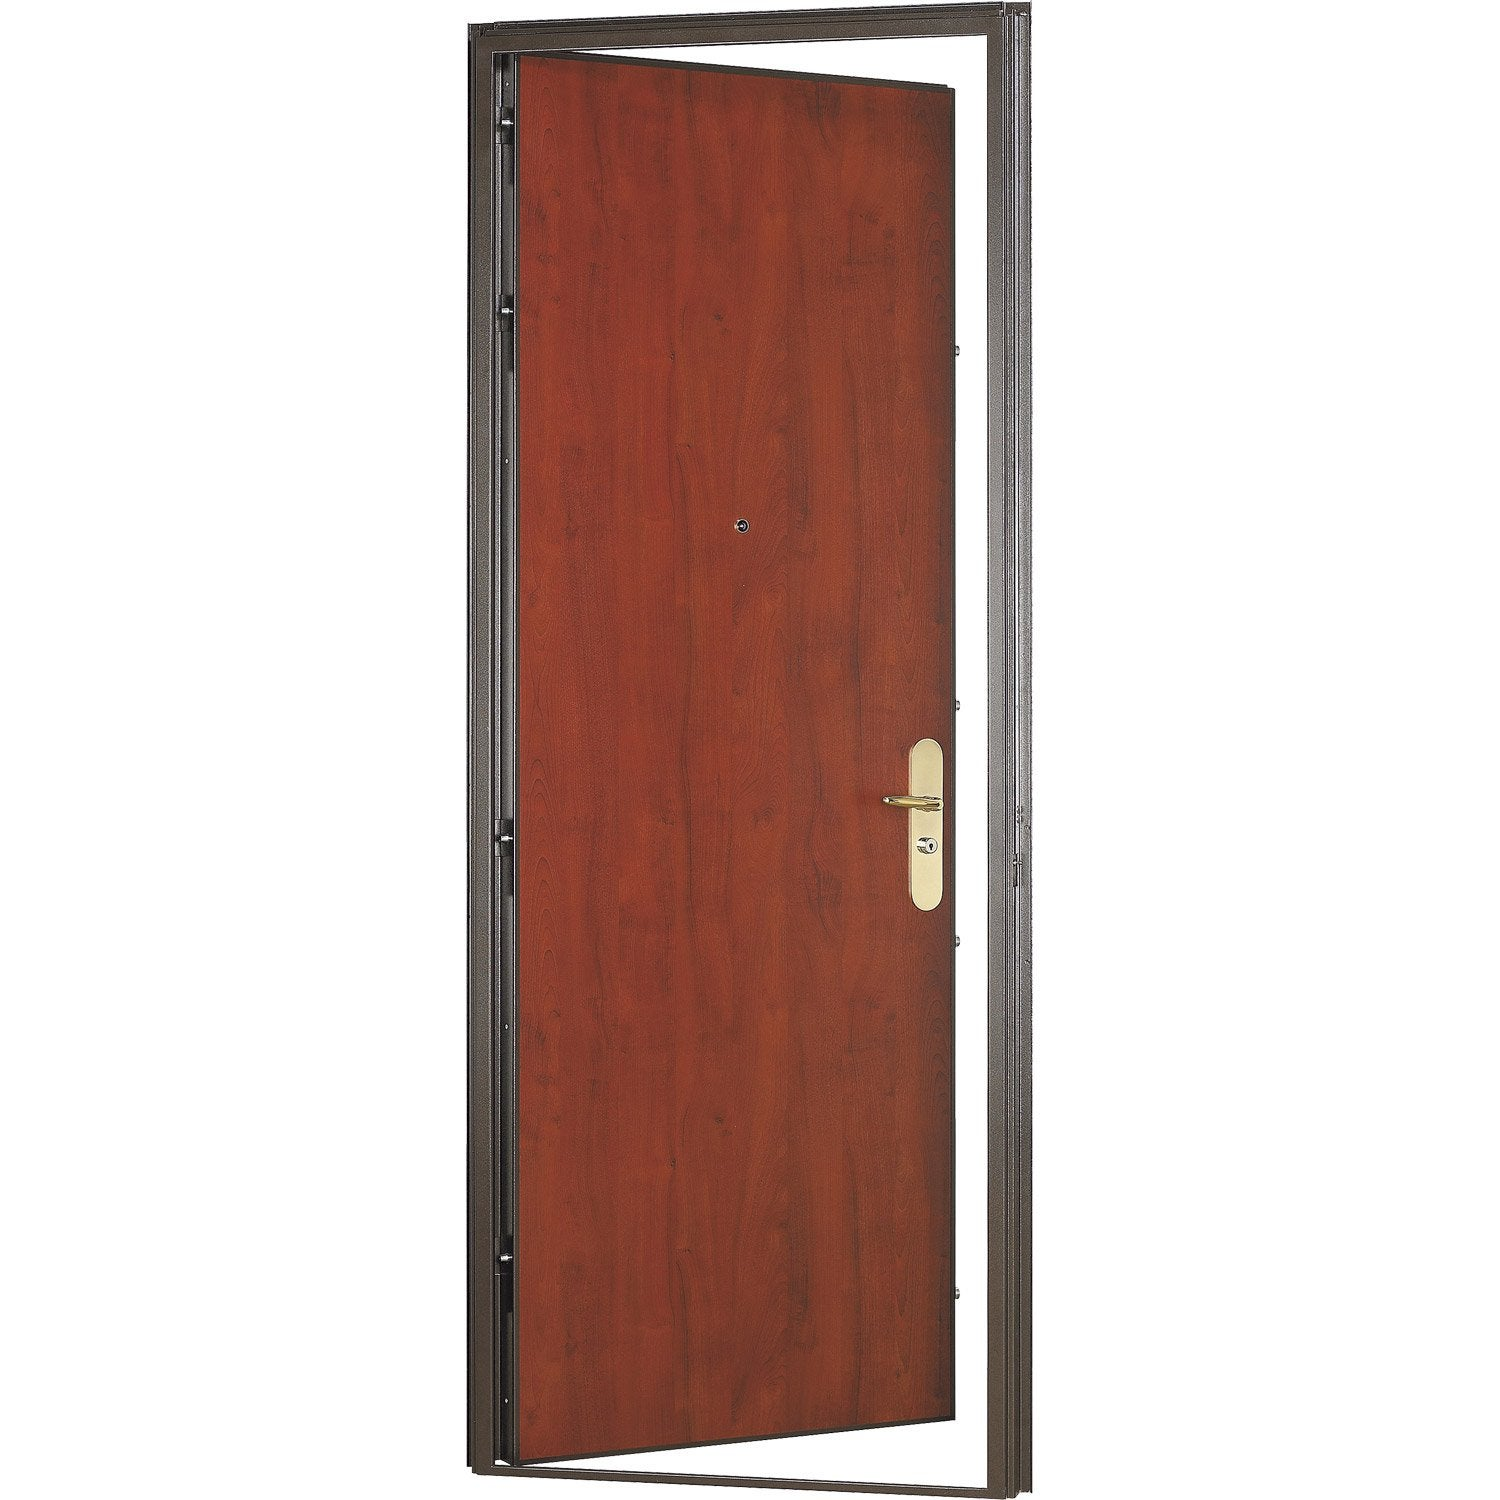 Porte blind e sur mesure diamant 2 leroy merlin for Porte 63cm leroy merlin